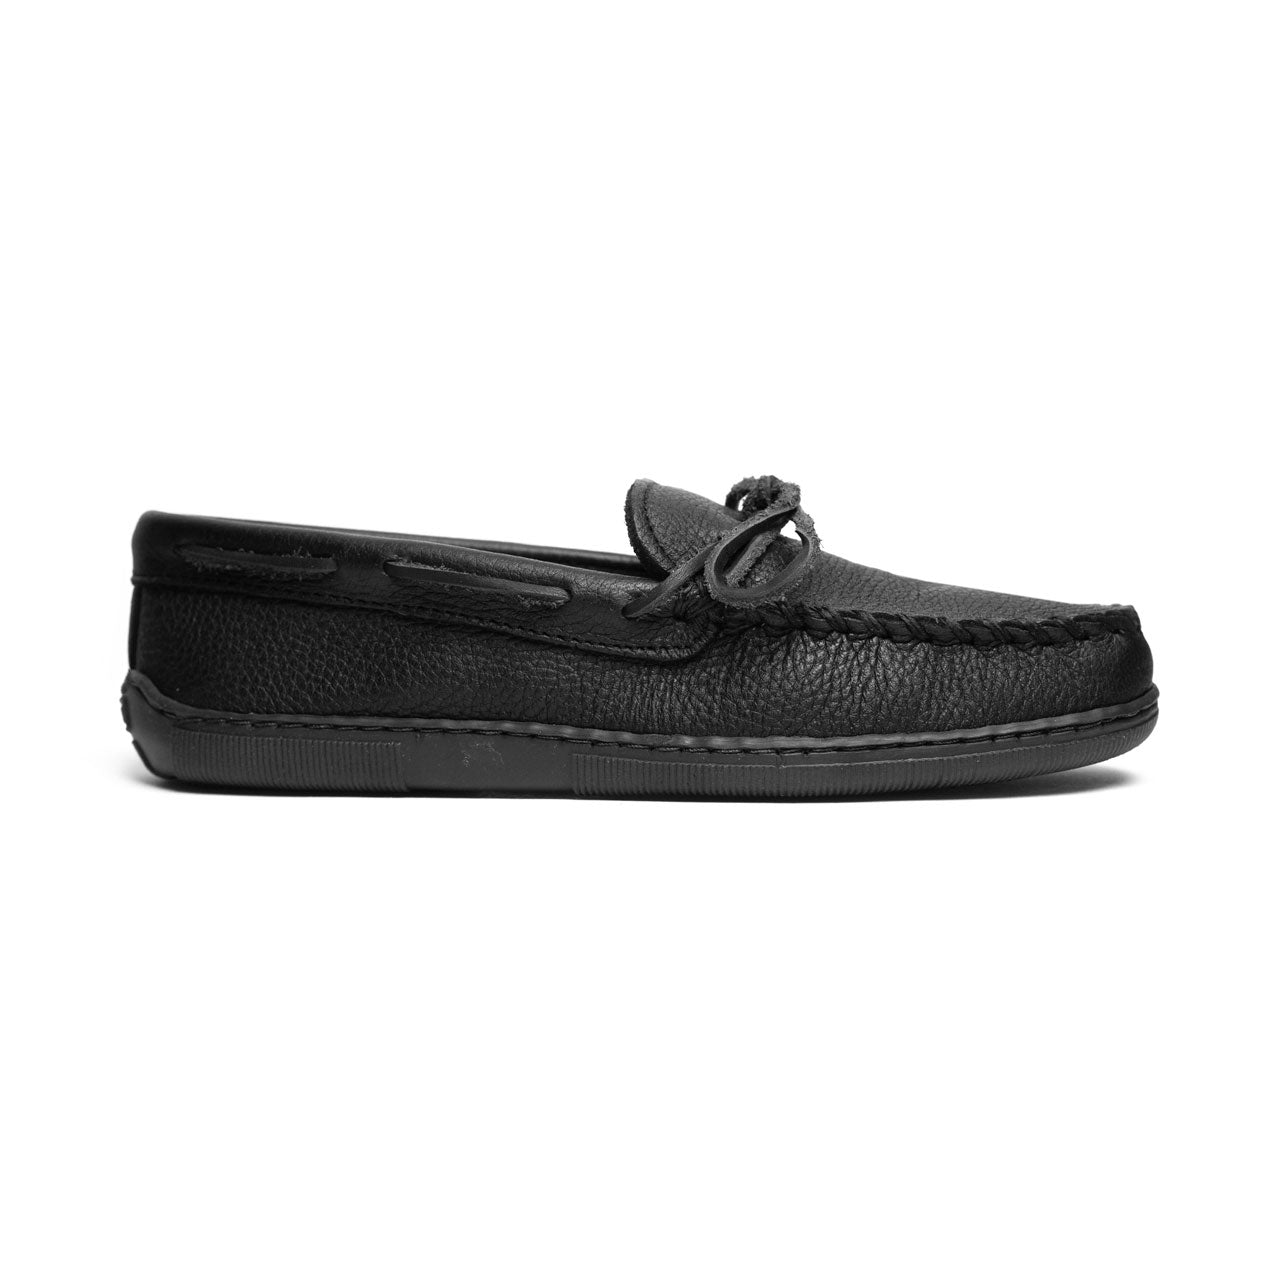 Minnetonka Moosehide Classic Moc Shoes